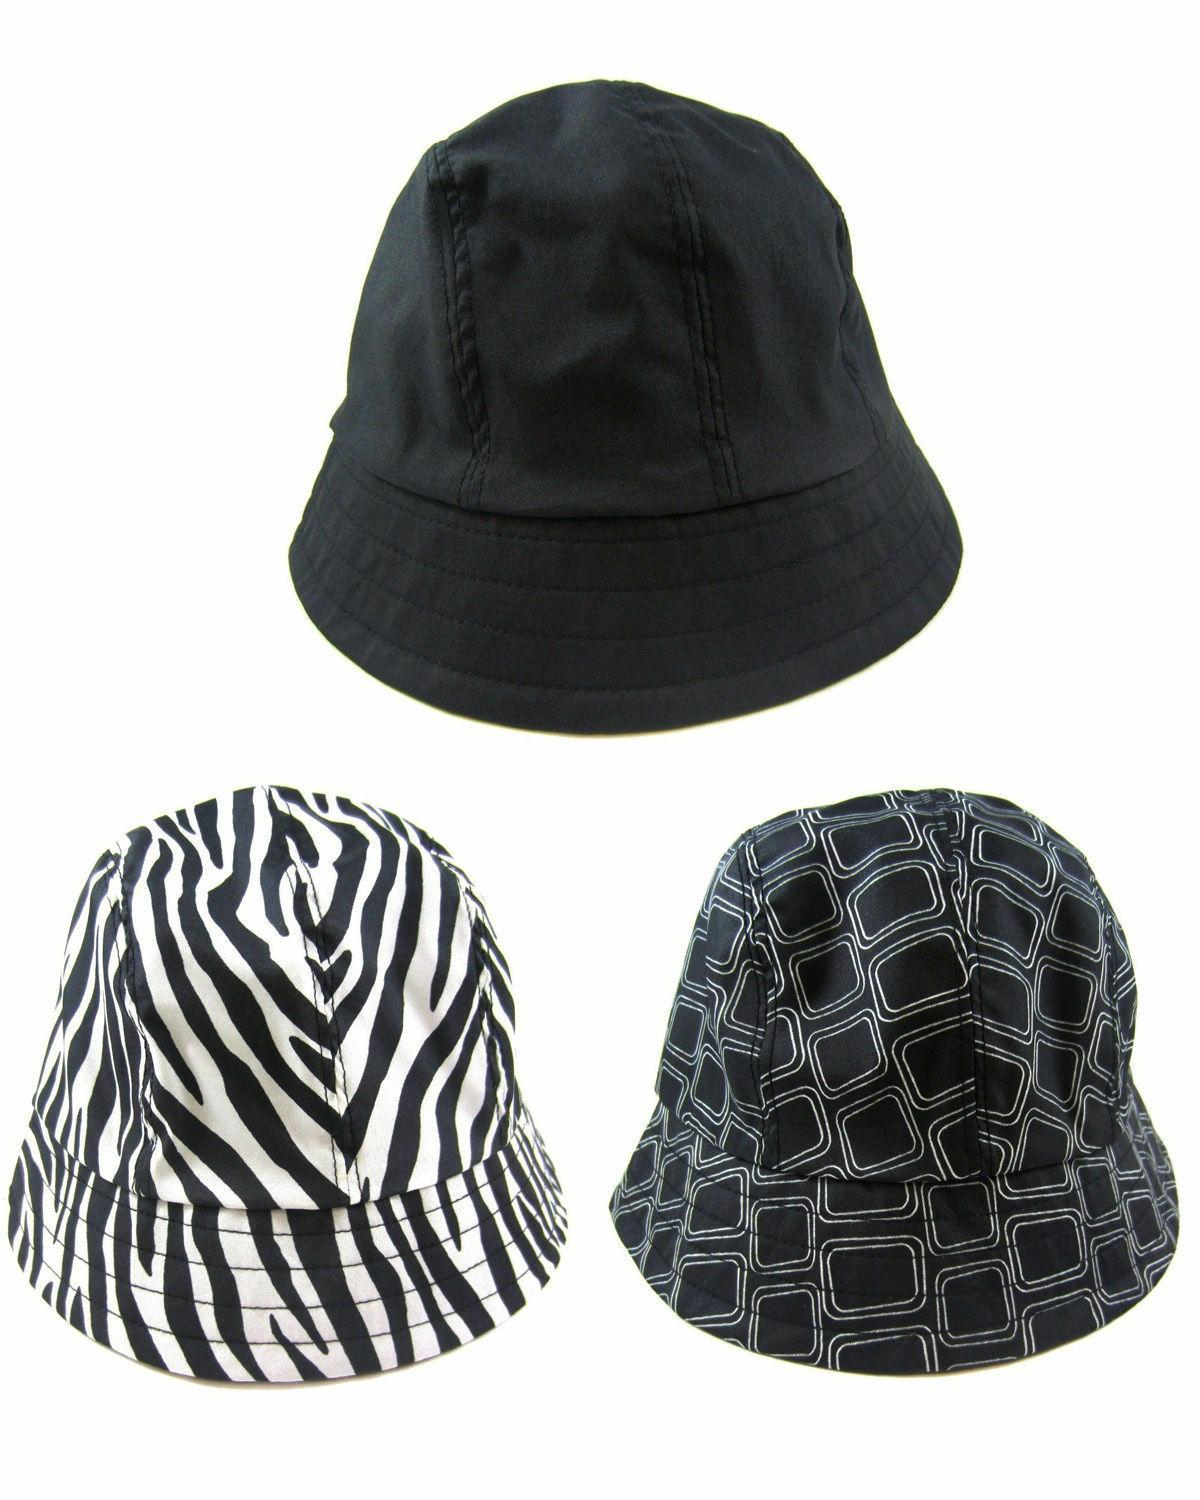 NEW SET of 3 Women's Totes Rain Bucket Hats Black, Squares &